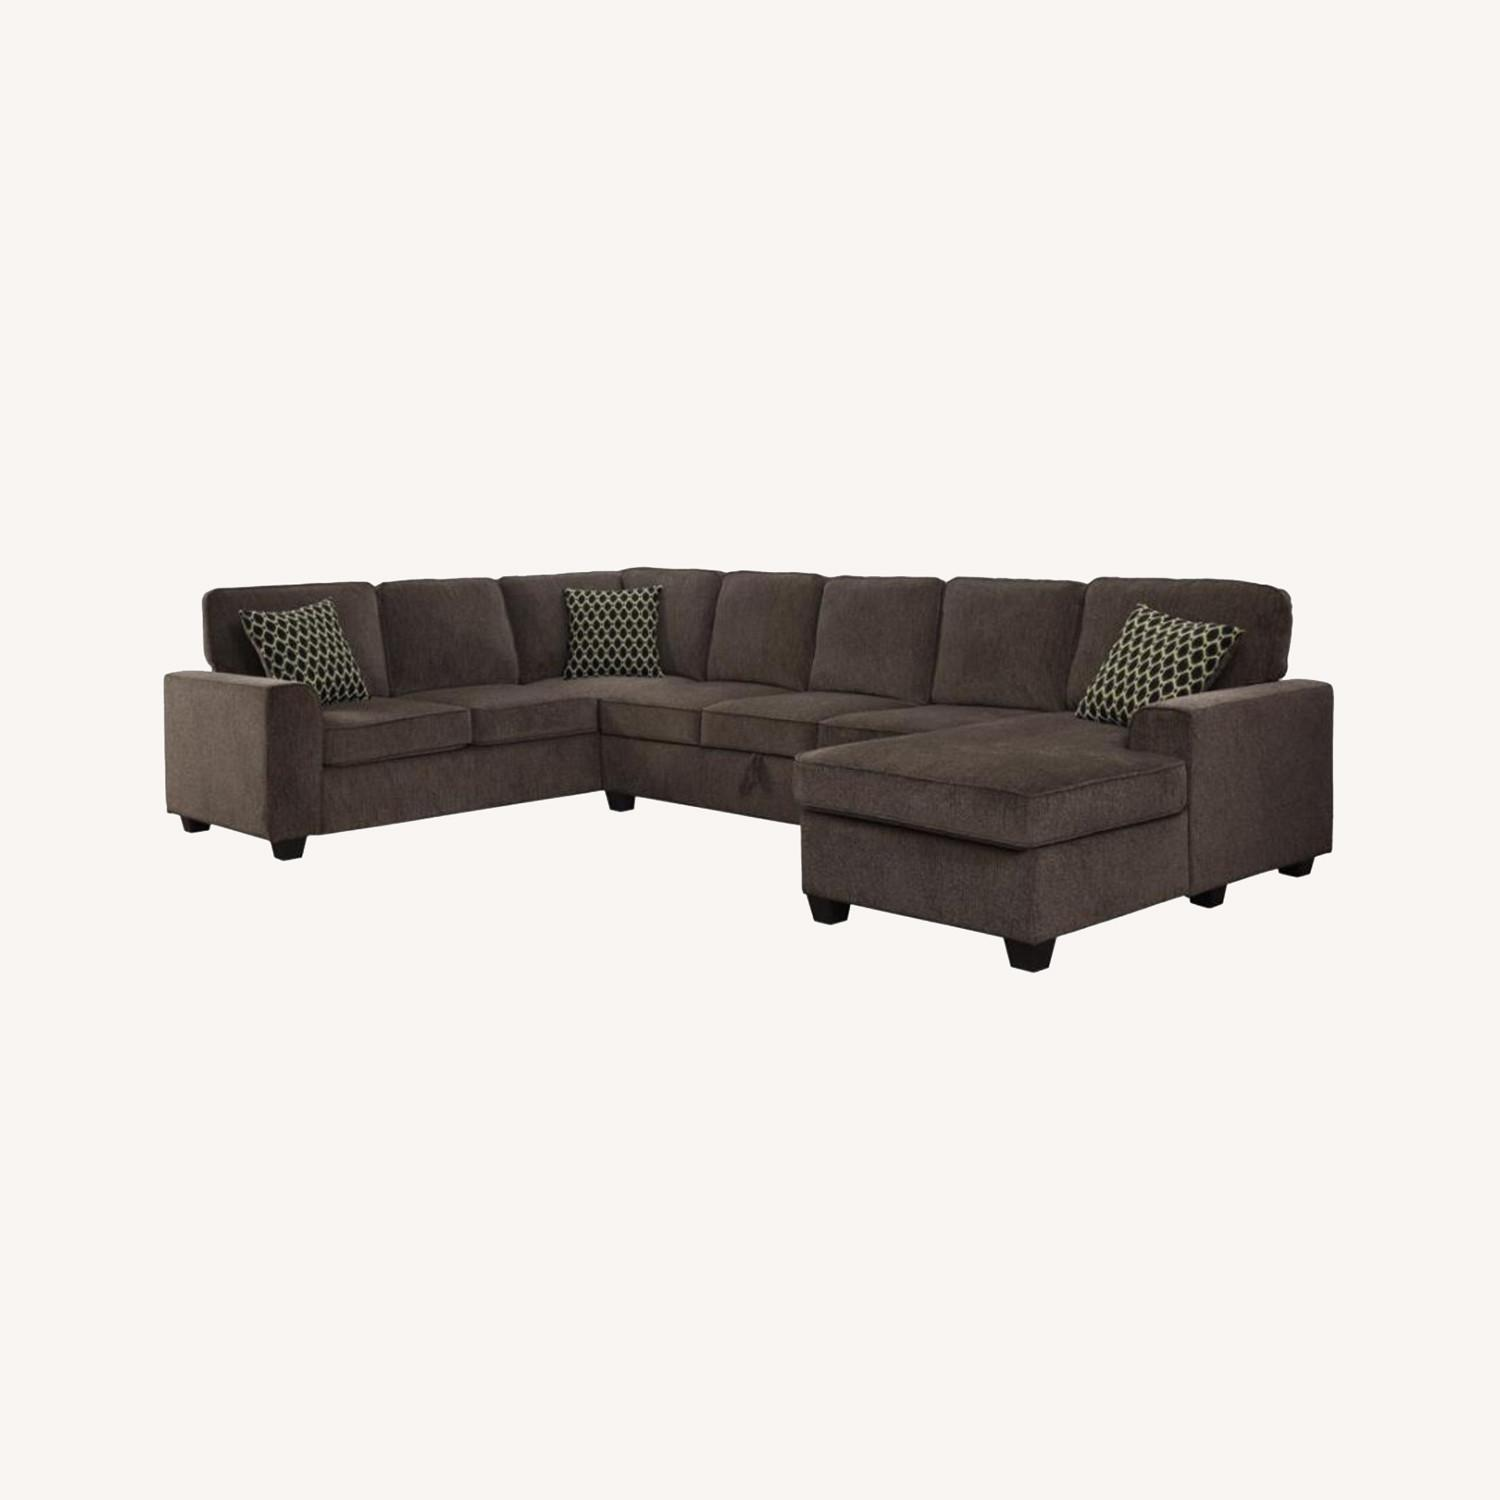 Sectional In Multi-Tonal Brown Chenille Upholstery - image-11